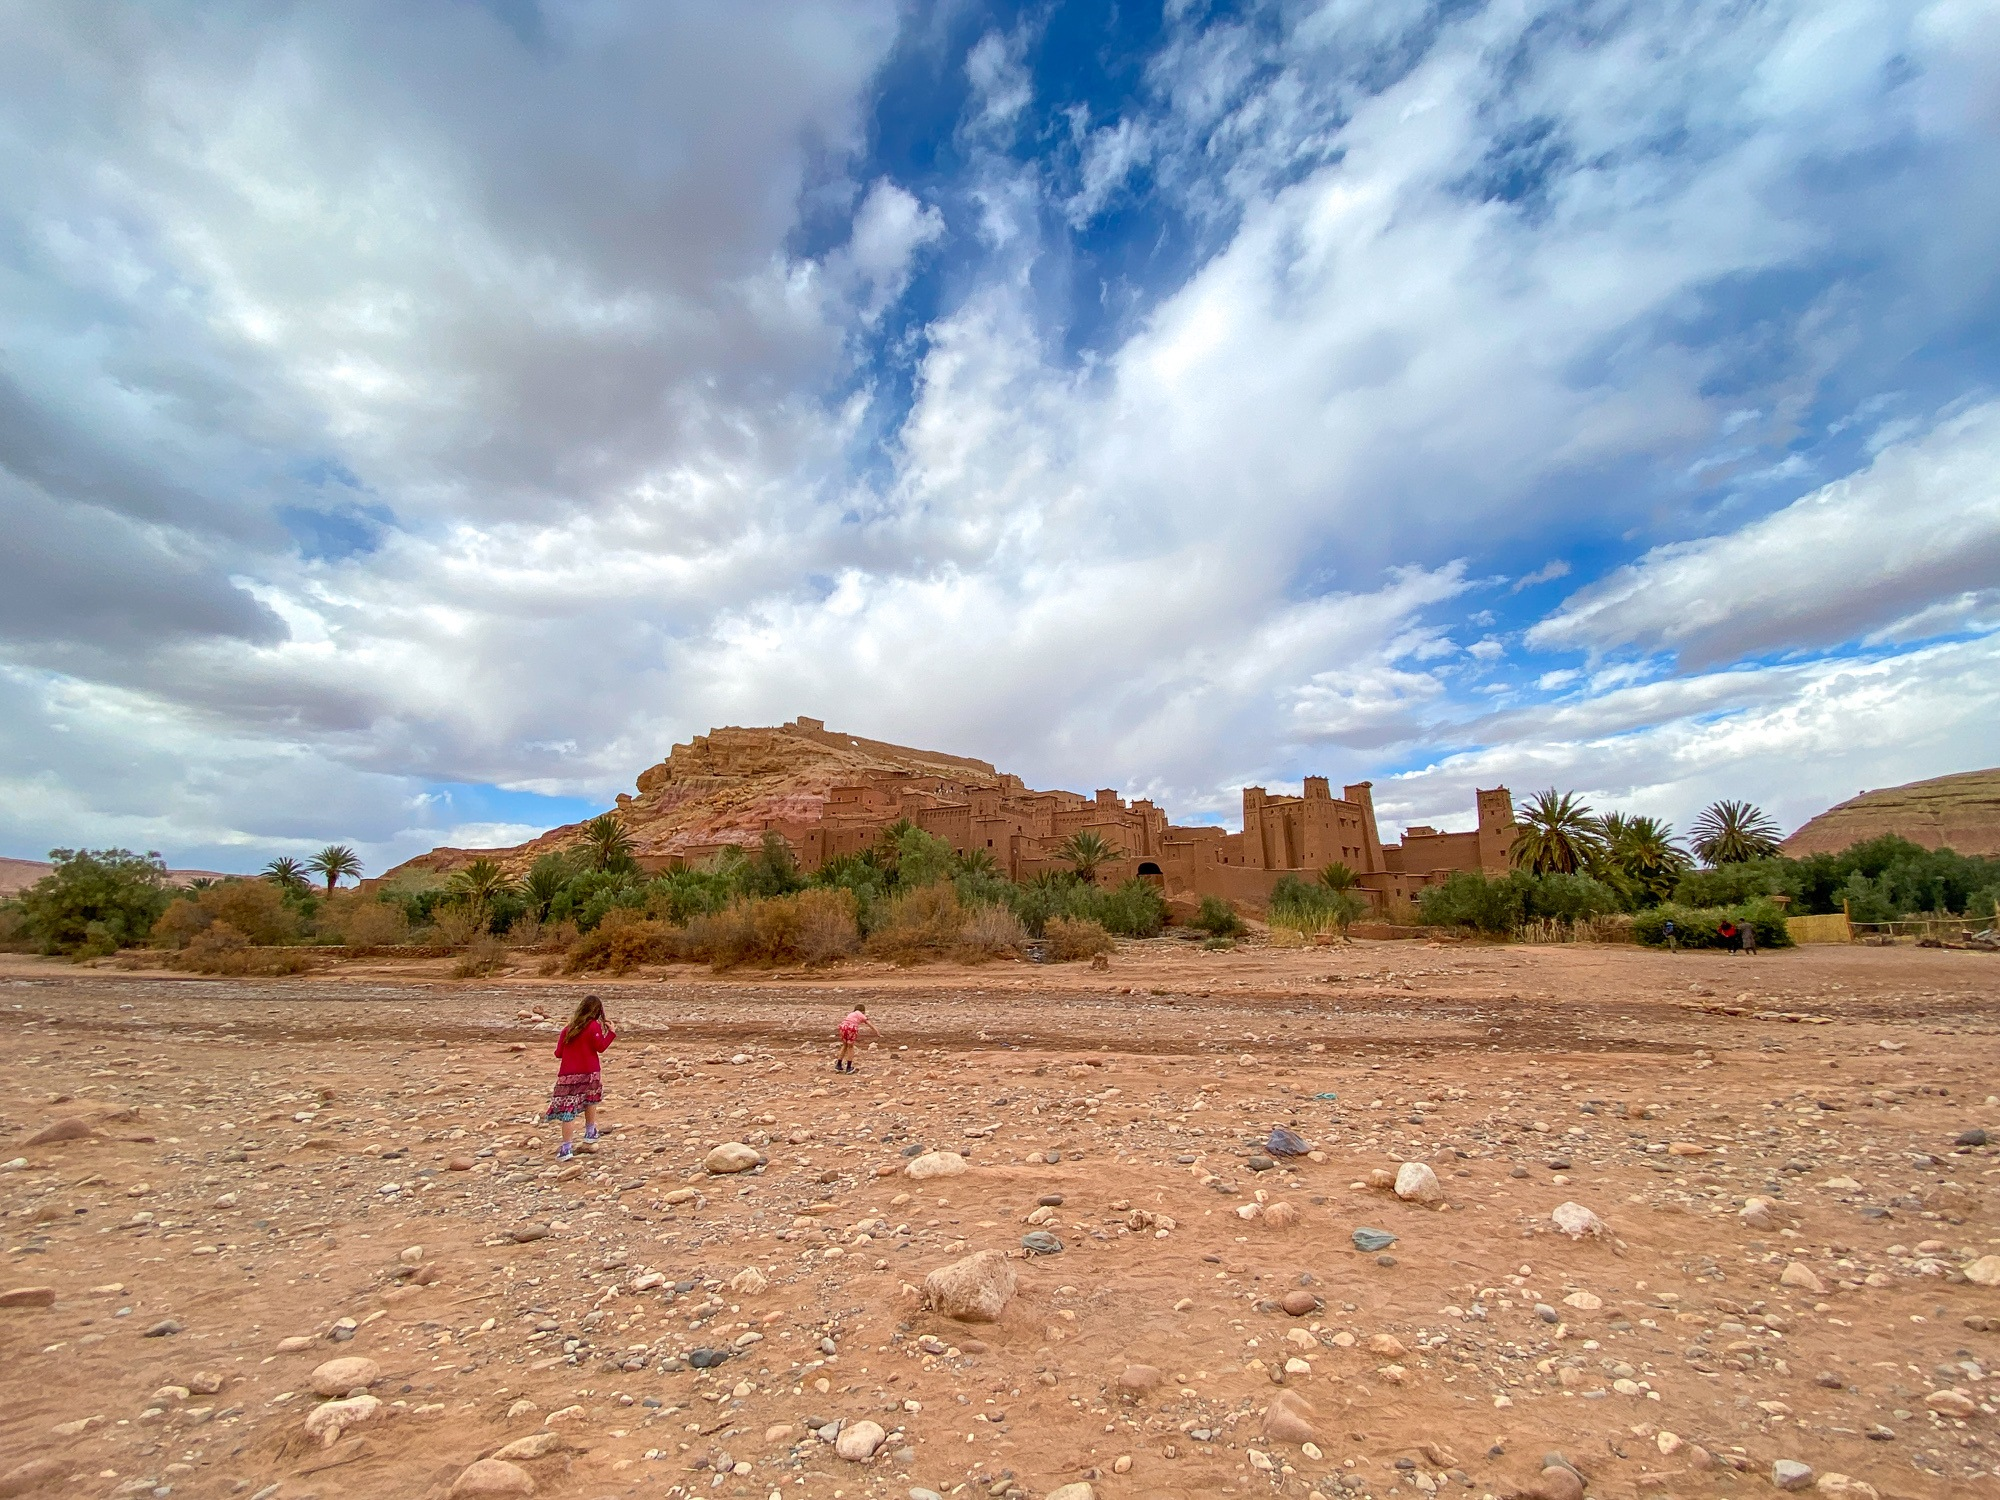 Kids in Morocco at Ait Ben Haddou Village, a UNESCO heritage site